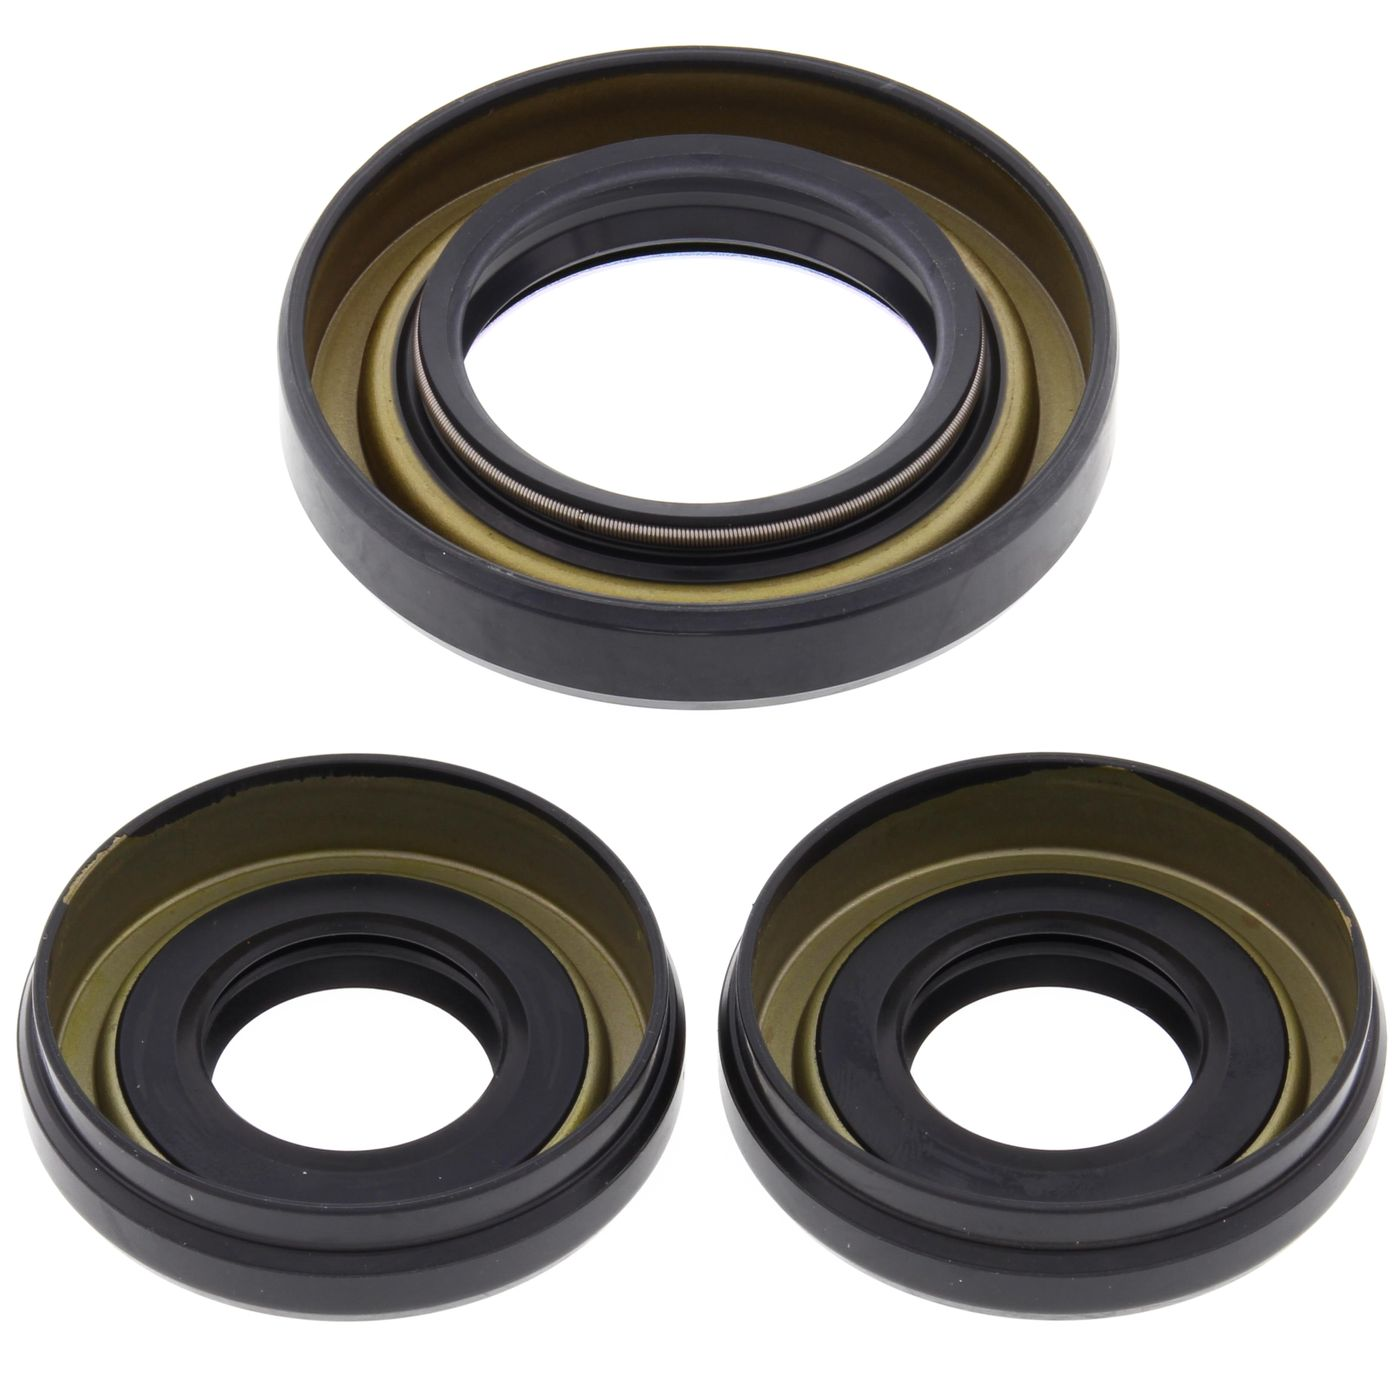 Wrp Diff Seal Kits - WRP252001-5 image